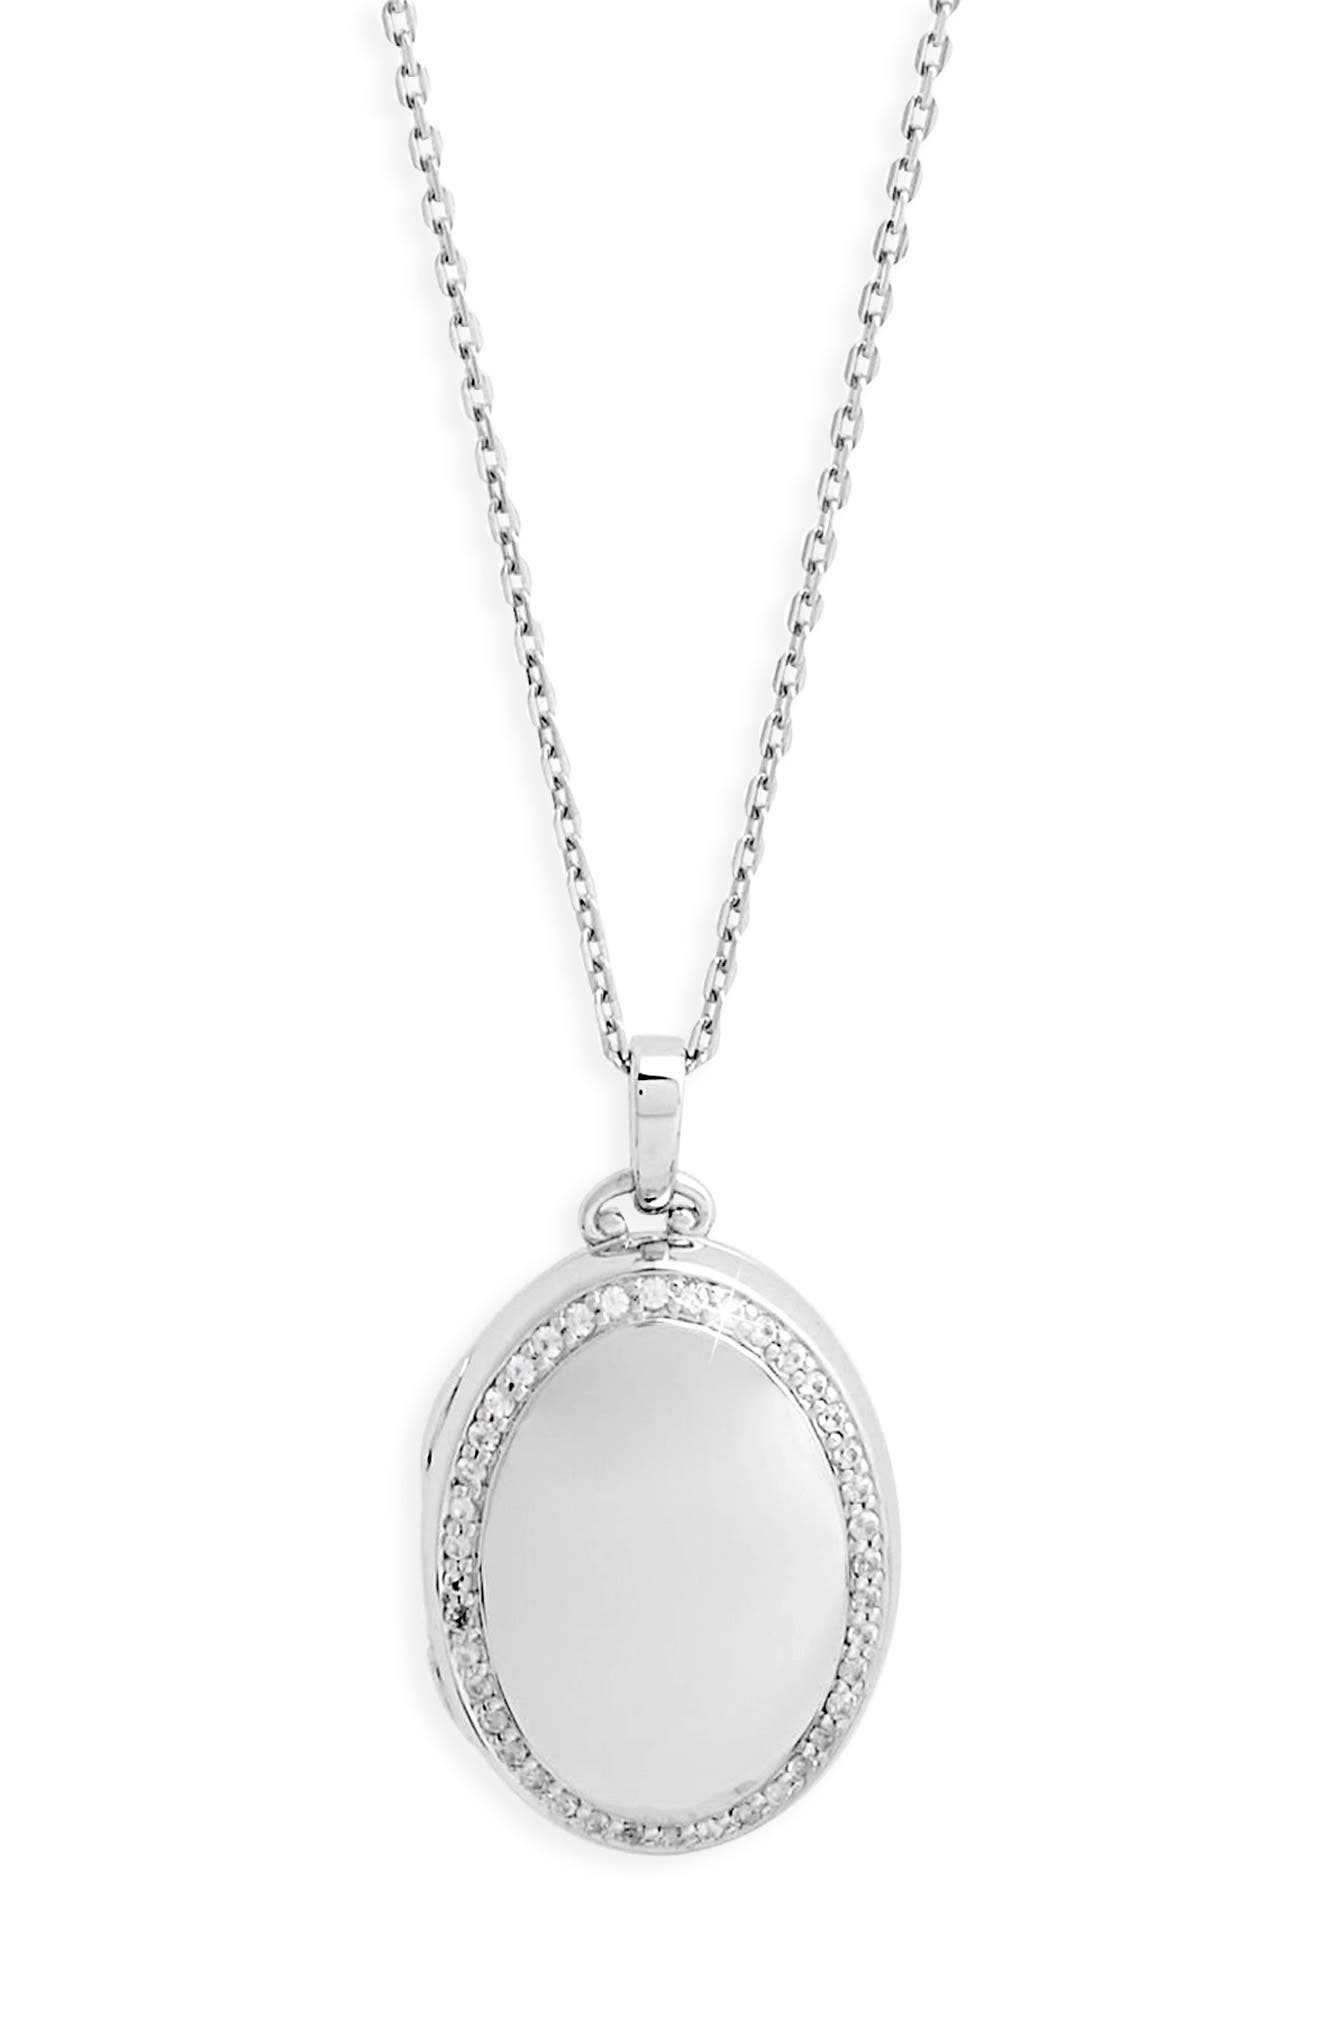 Four Image White Sapphire Locket Necklace,                             Alternate thumbnail 3, color,                             STERLING SILVER